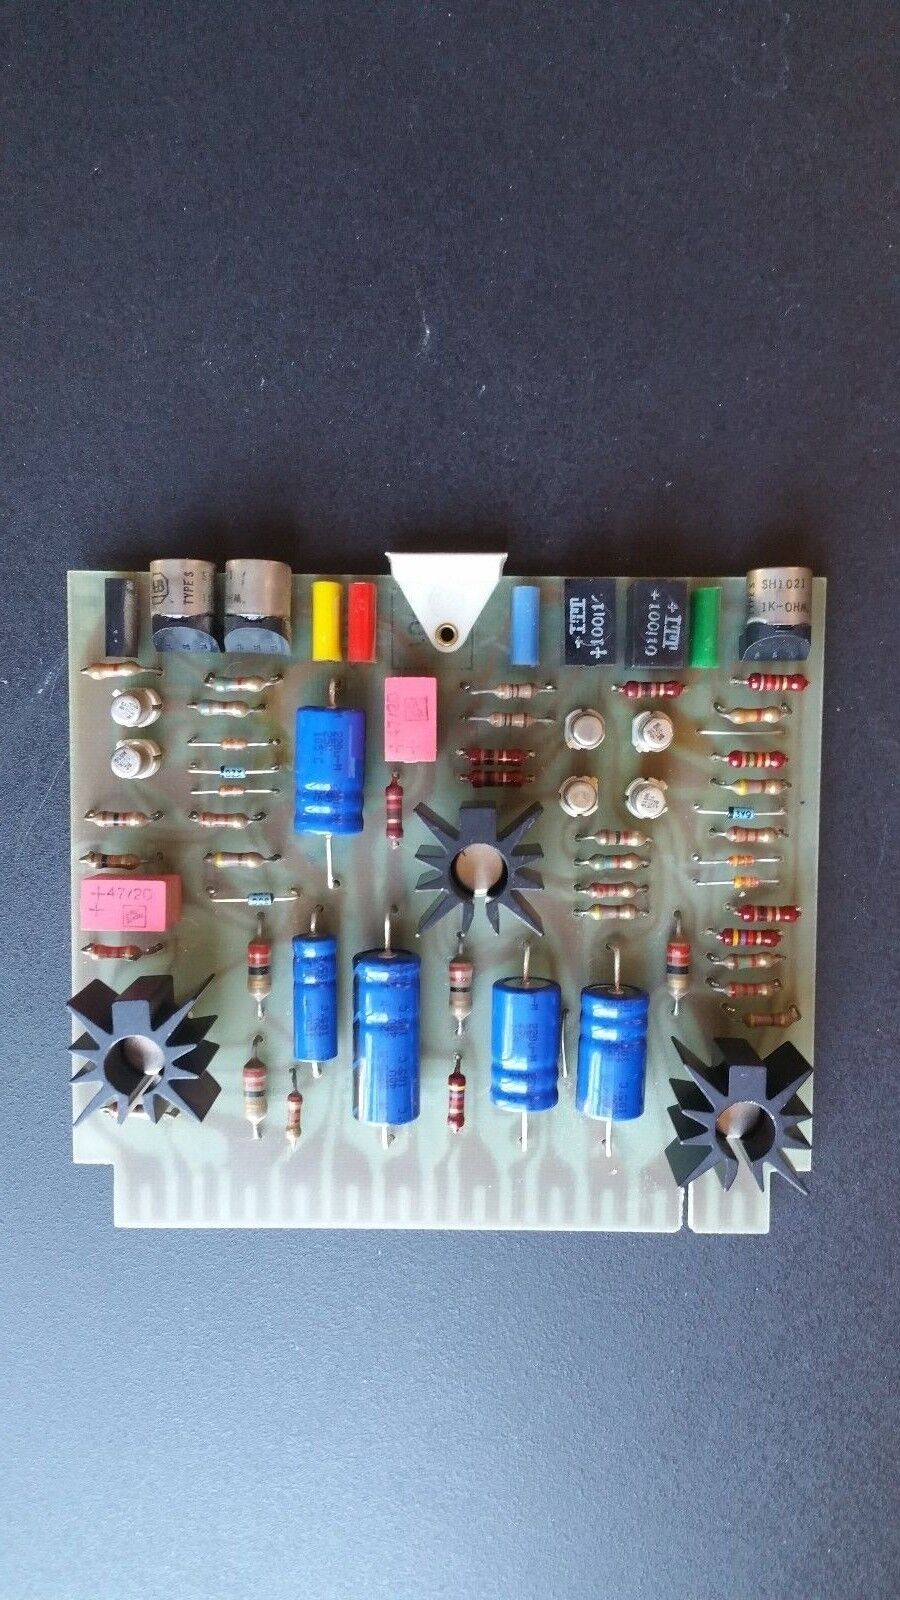 Re-Capped Studer 1.080.370-11 Transport Stabilizer Card for A80 A80R A80RC A80VU